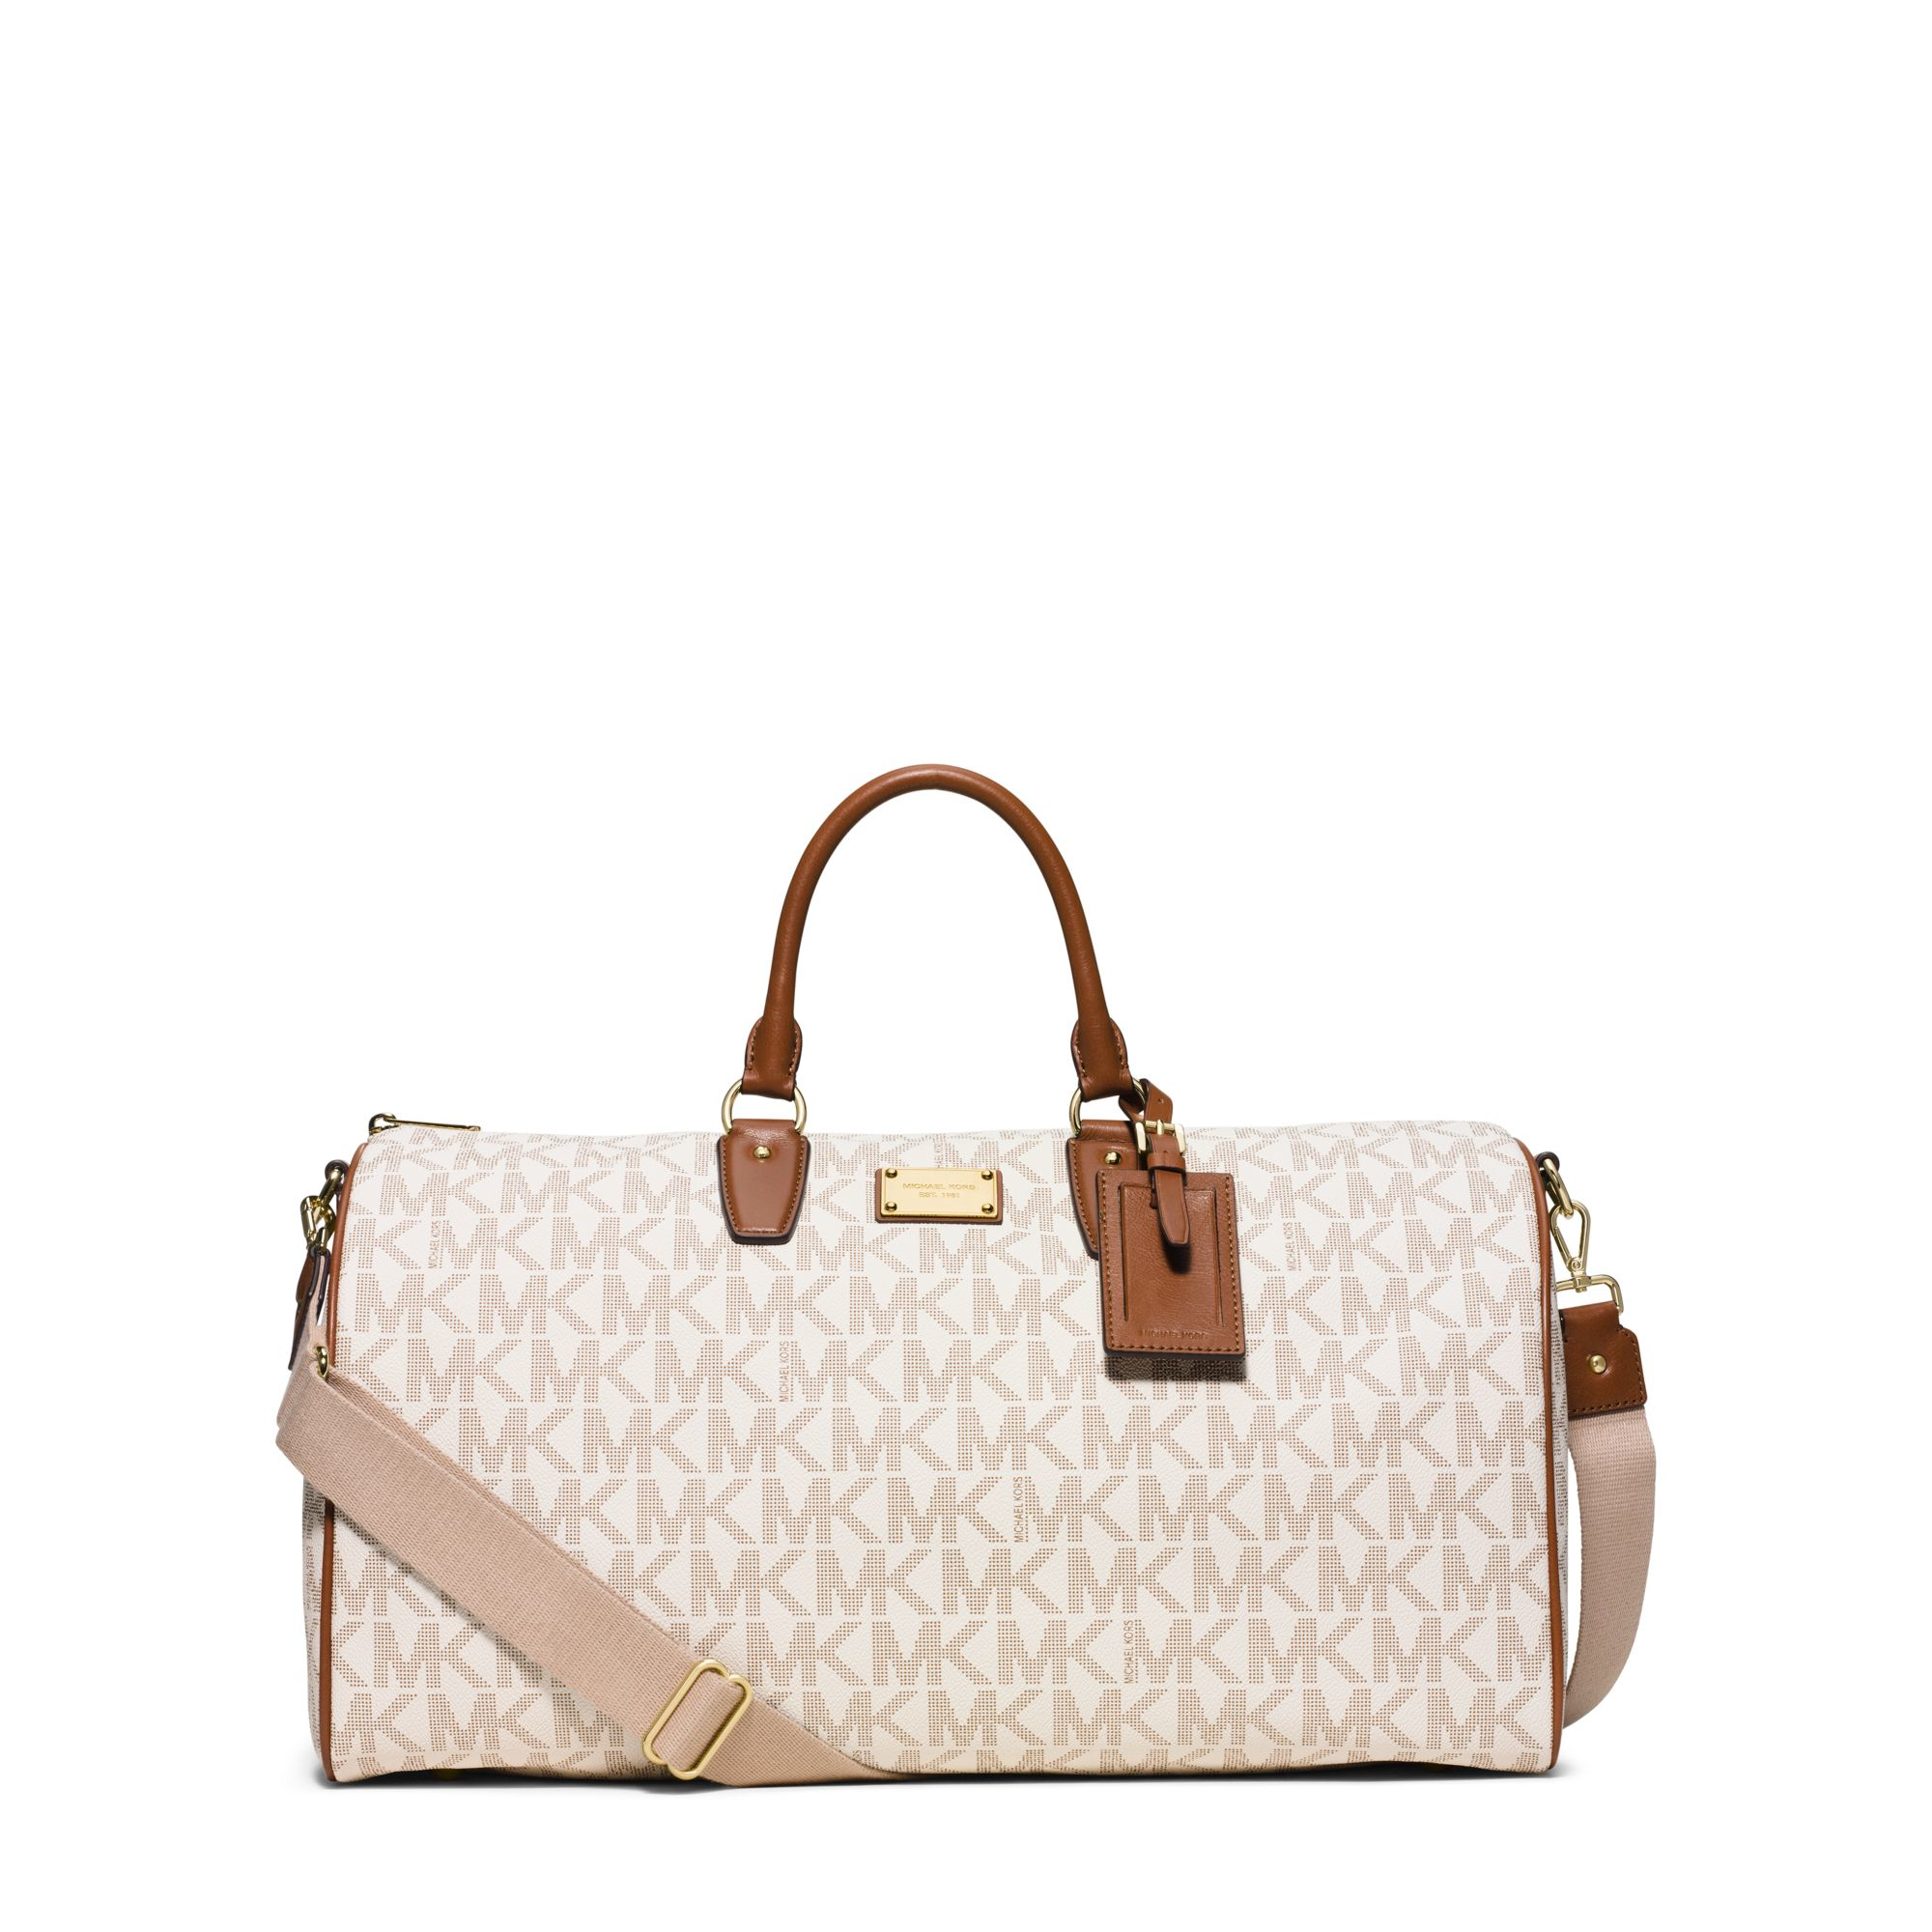 fc0a96b578c0 Lyst - Michael Kors Jet Set Travel Weekender in White